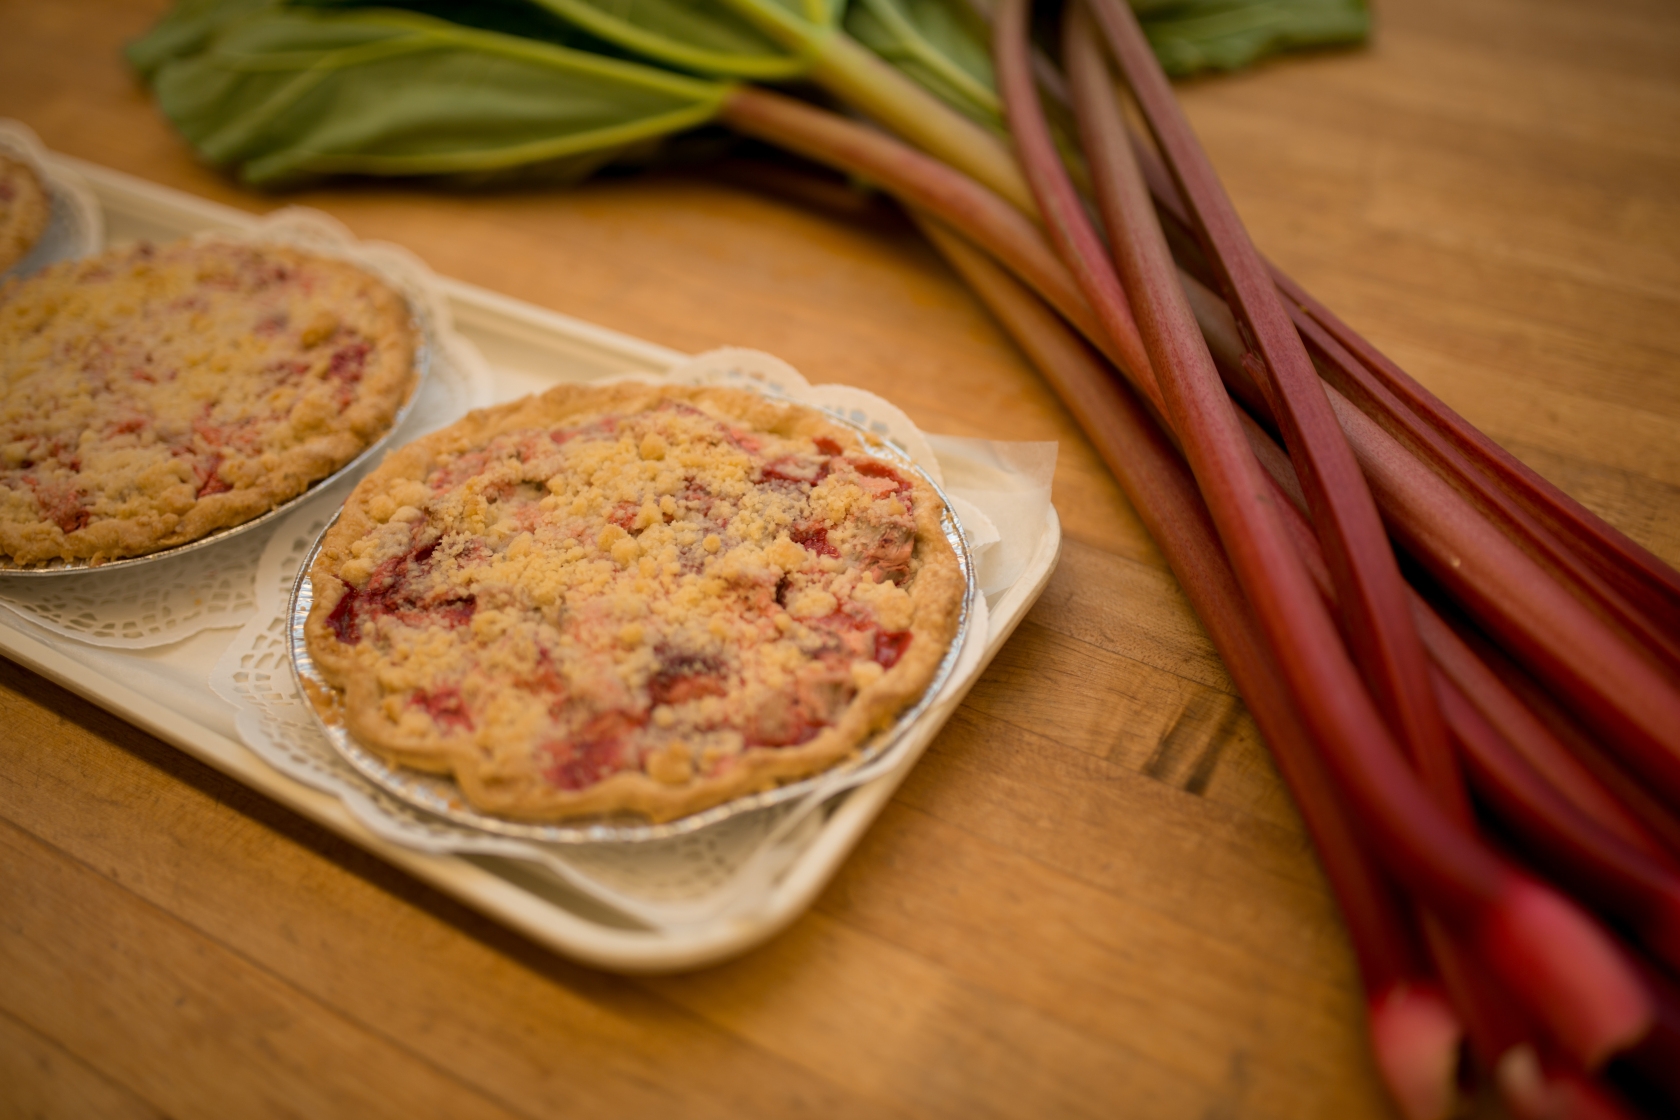 I love the tartness of rhubarb baked into squares, tarts, cakes and of course – pies!